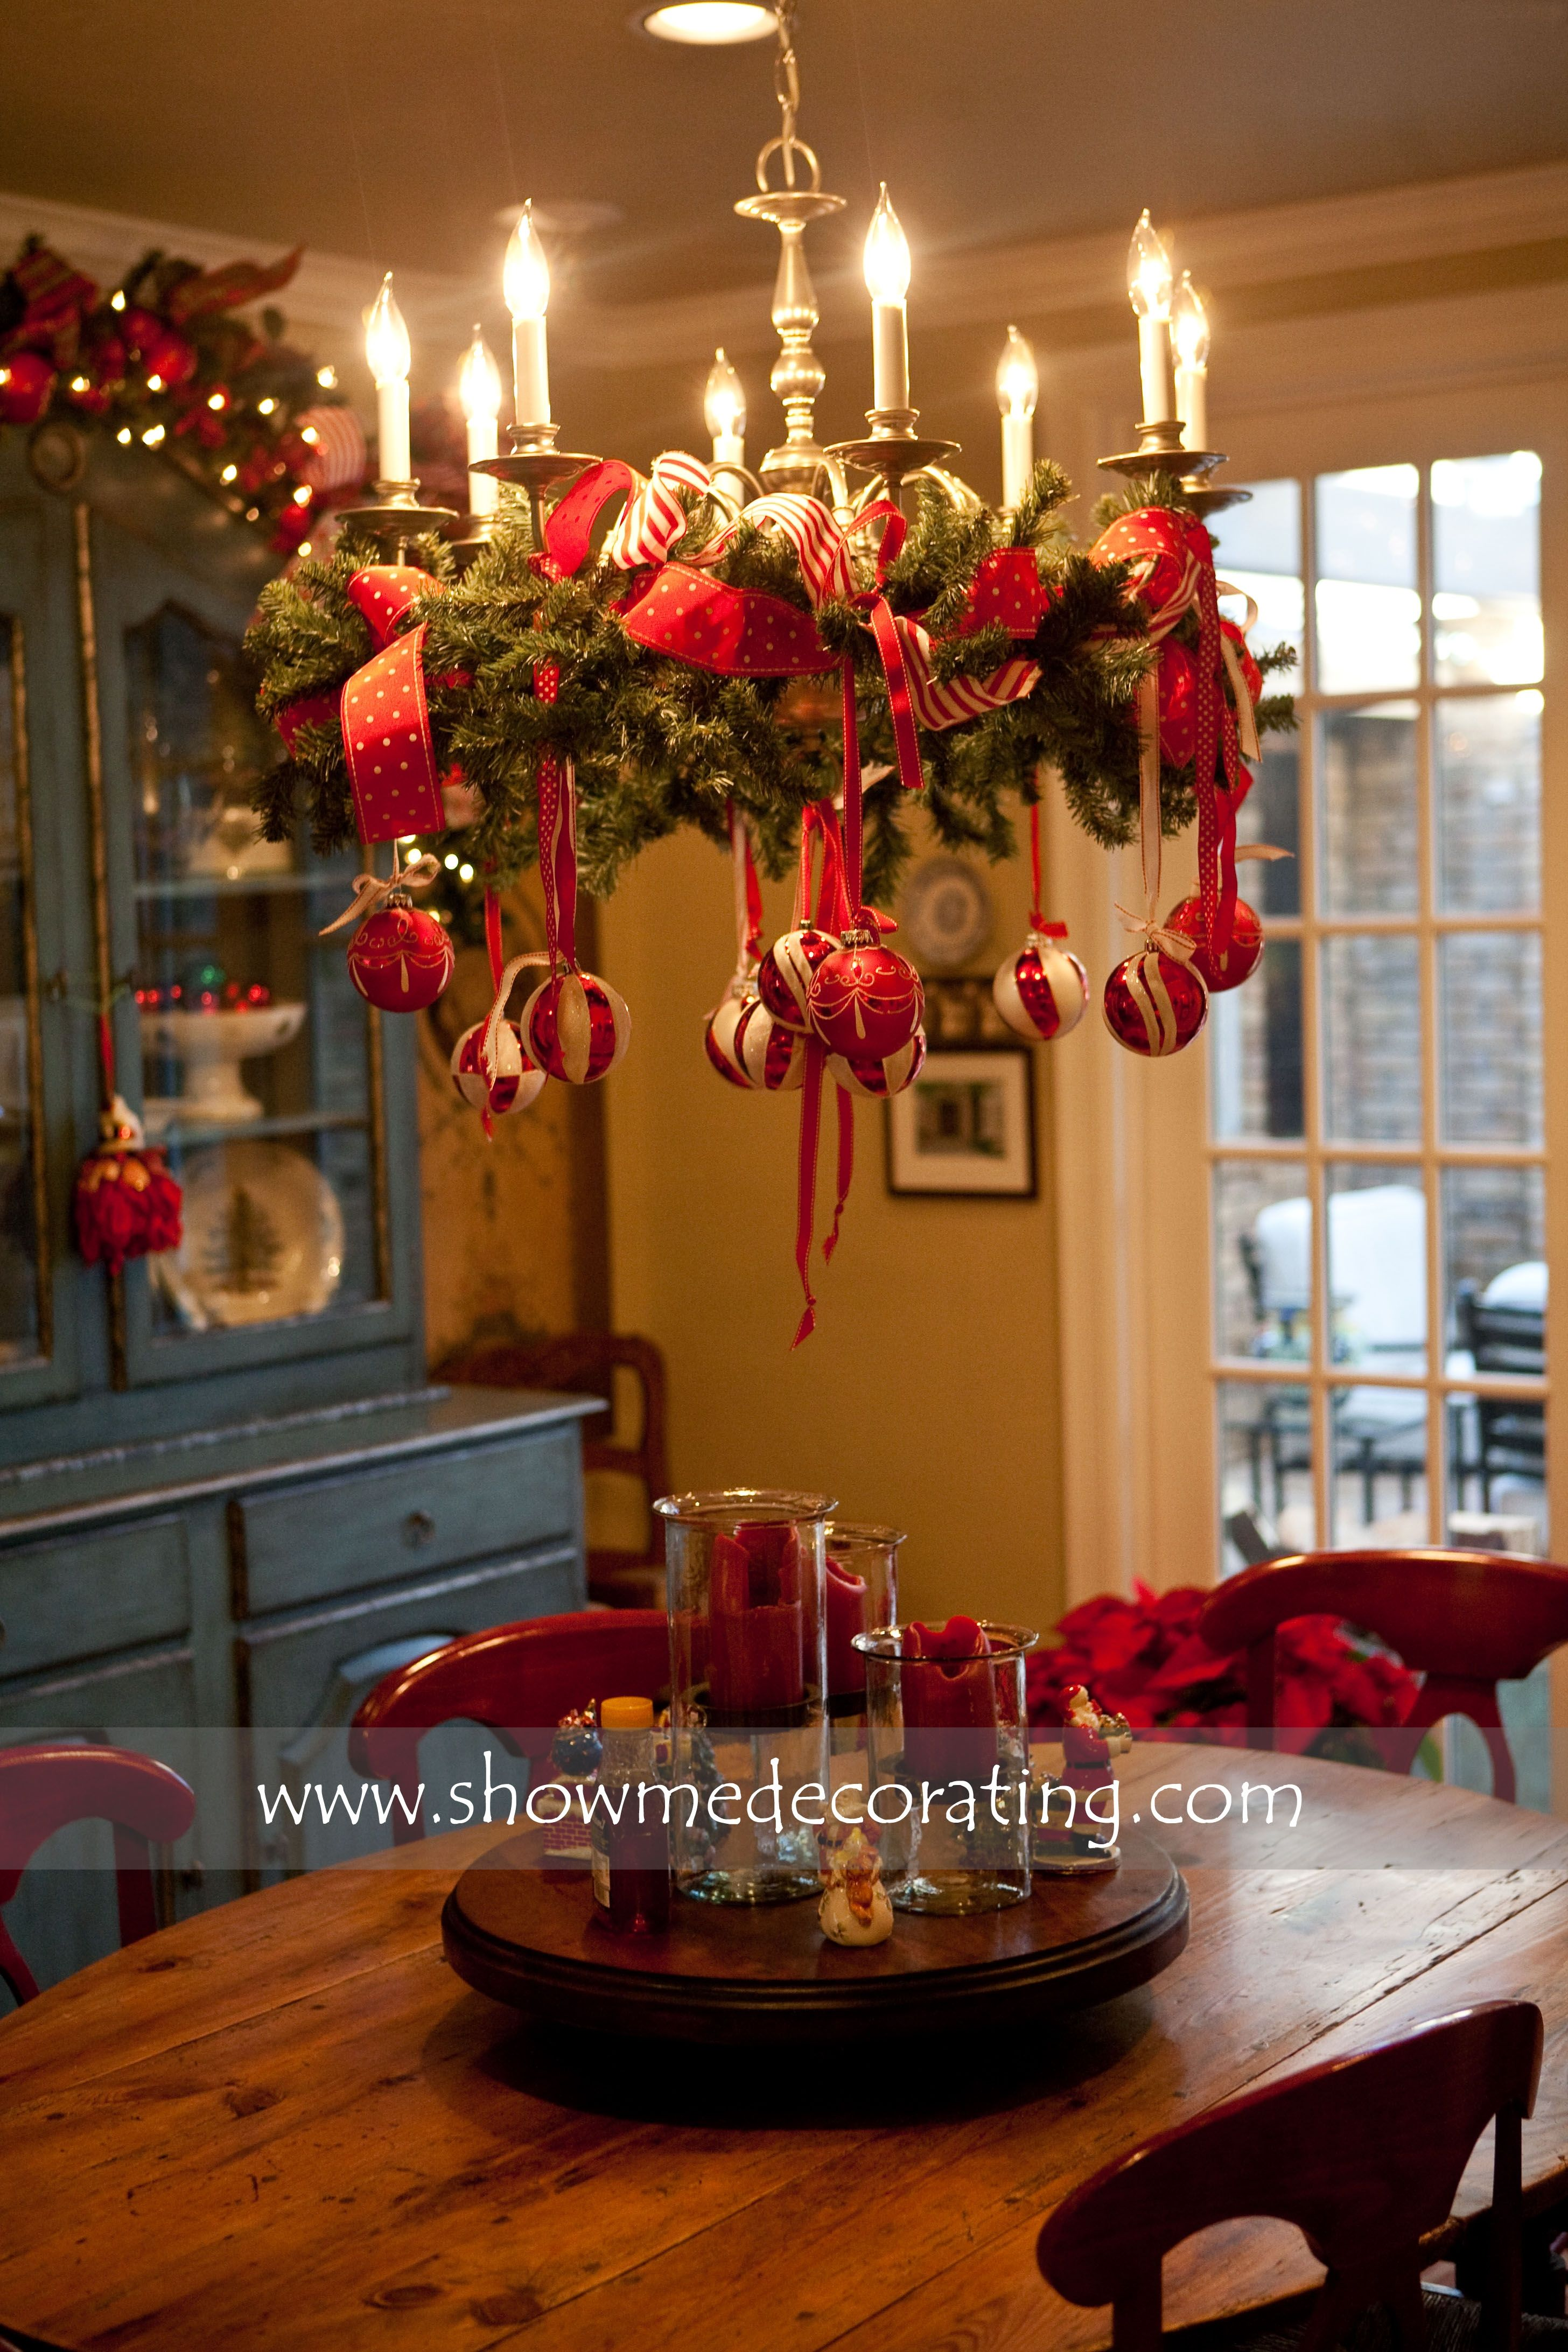 Festive Way To Dress Up A Chandelier Add Garland And Ribbon And